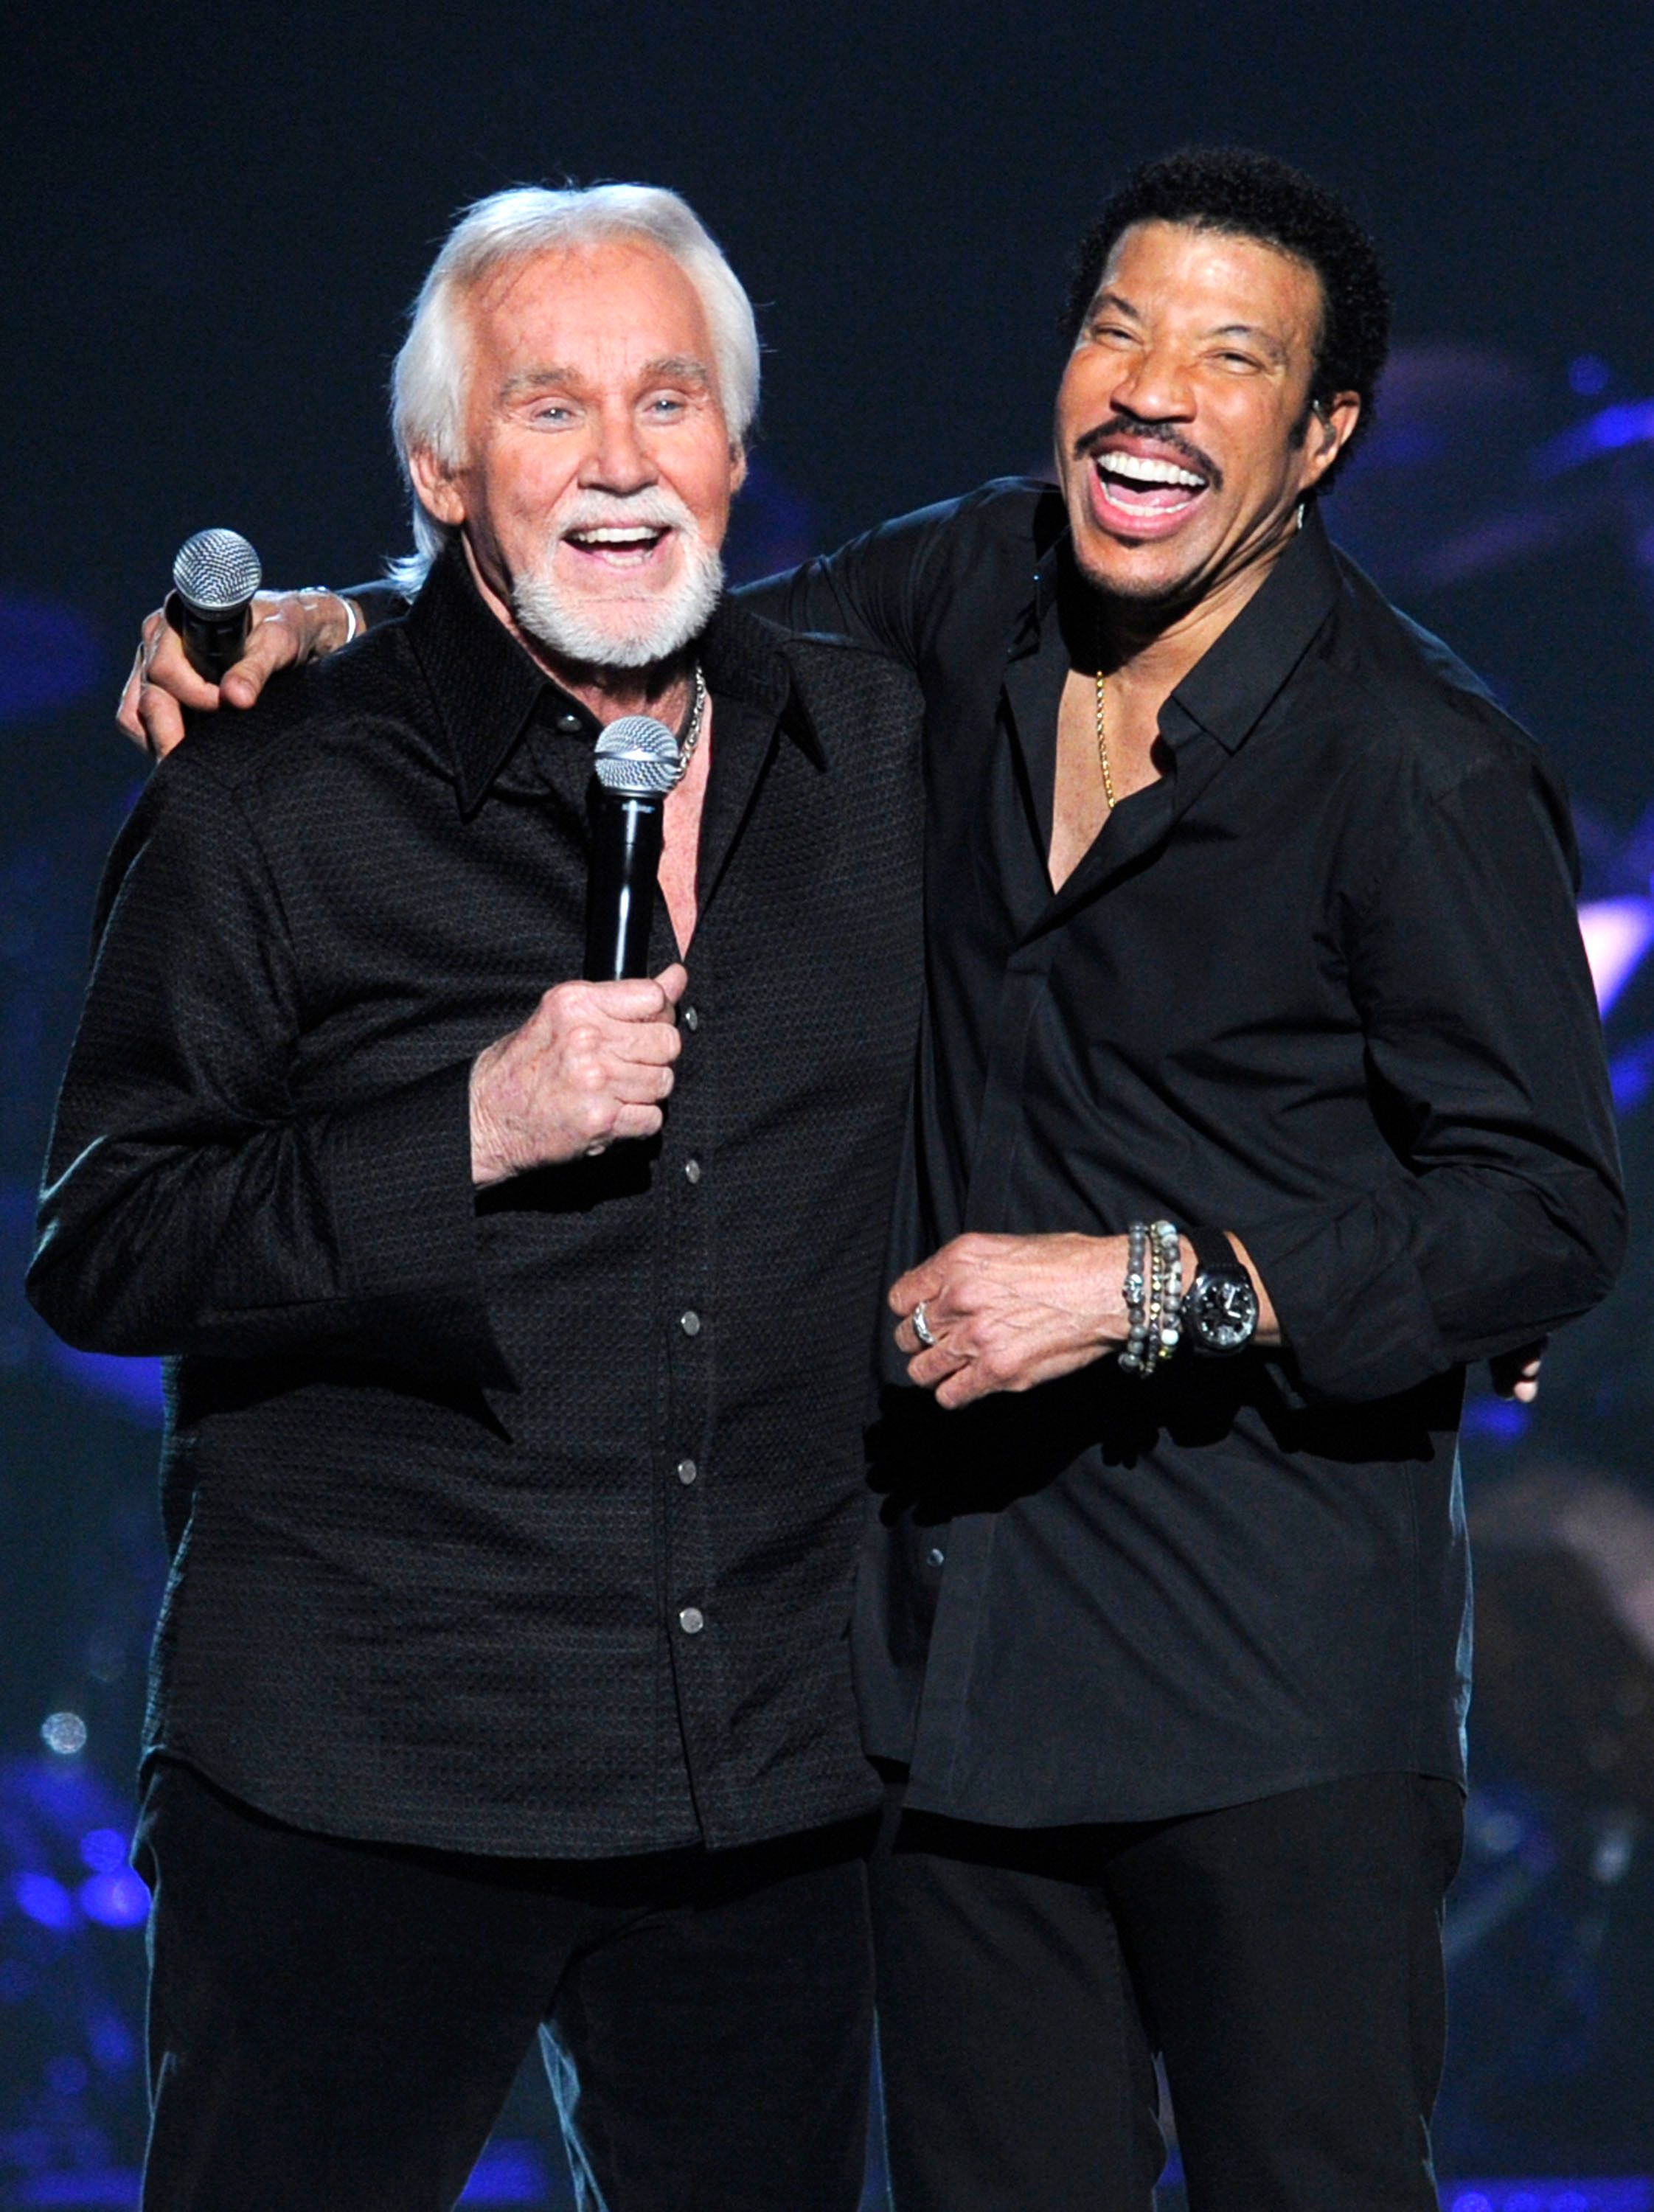 Kenny Rogers and Lionel Richie performed at Lionel Richie and Friends in Concert presented by ACM held at the MGM Grand Garden Arena on April 2, 2012. | Photo: Getty Images